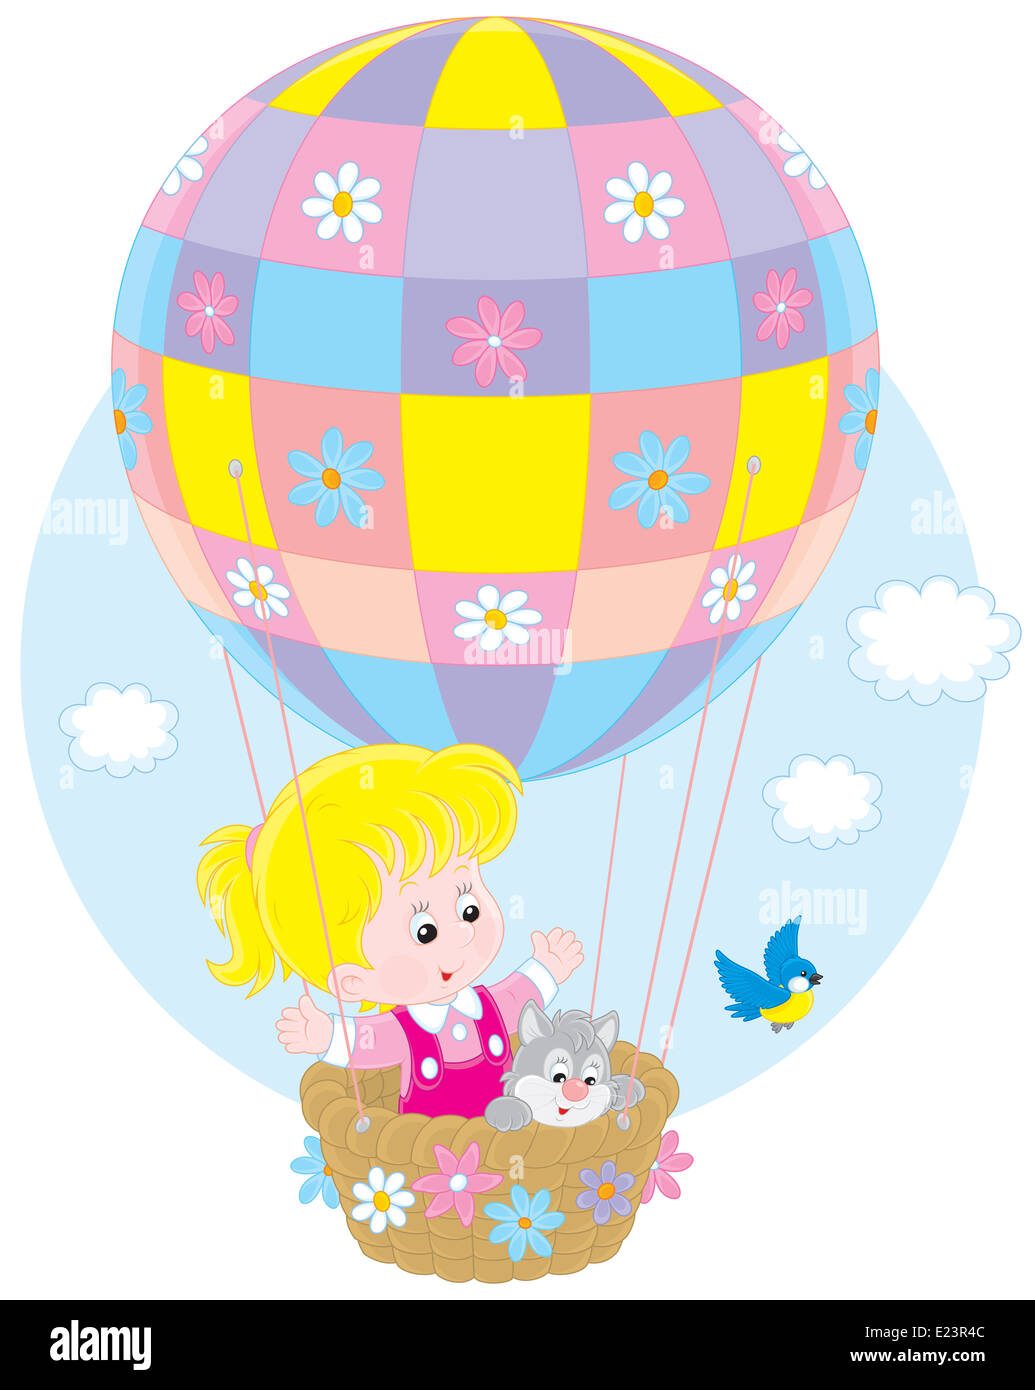 Little girl traveling with her kitten on a colorful air balloon with flowers - Stock Image